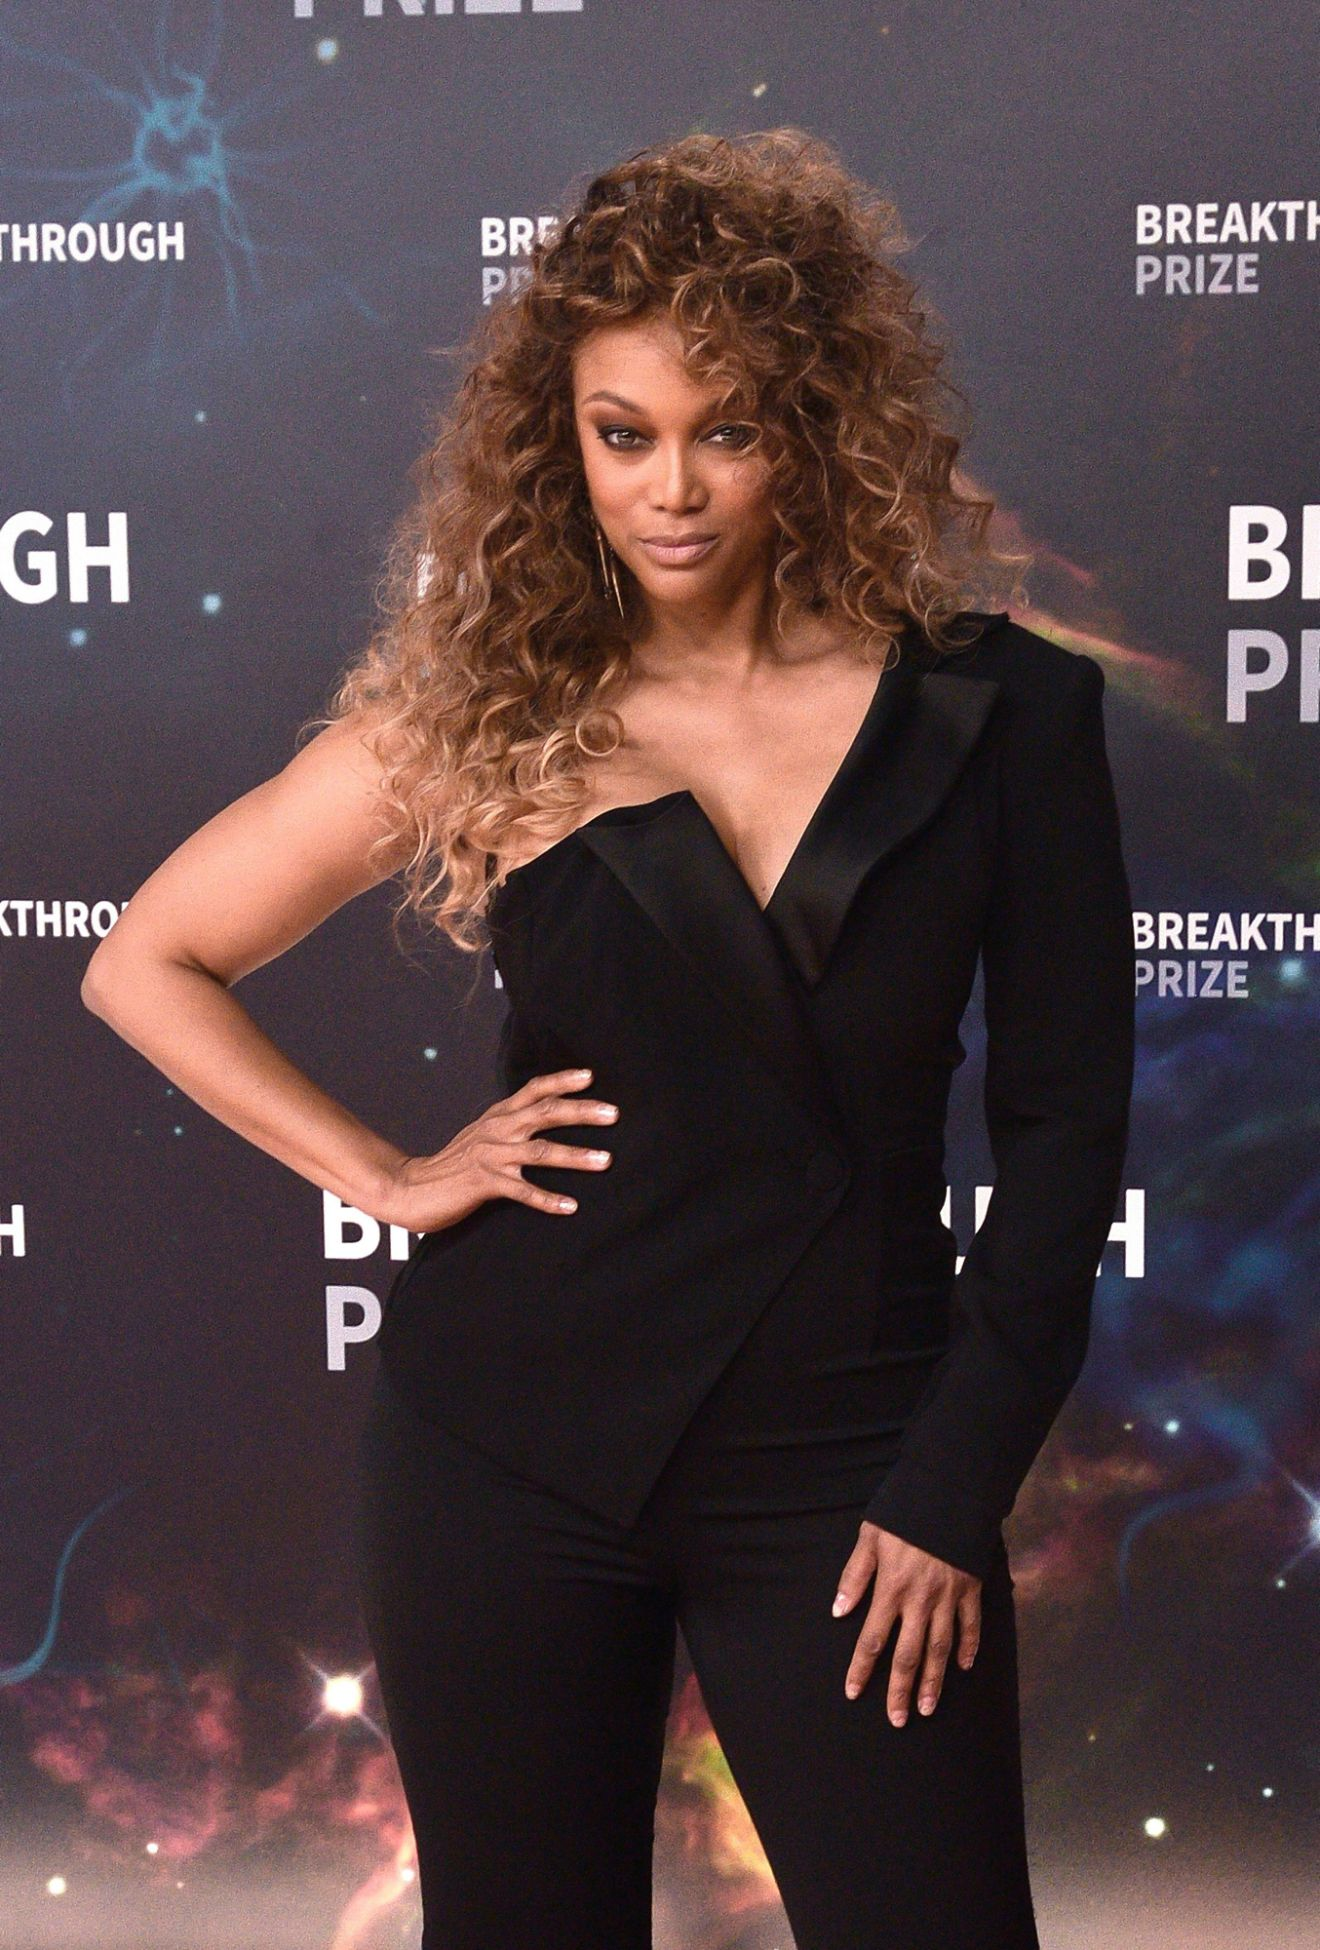 Tyra Banks Takes Over As Dwts Host After Tom Erin S Exits In 2020 Tyra Banks Son Tyra Banks Tyra Banks Show